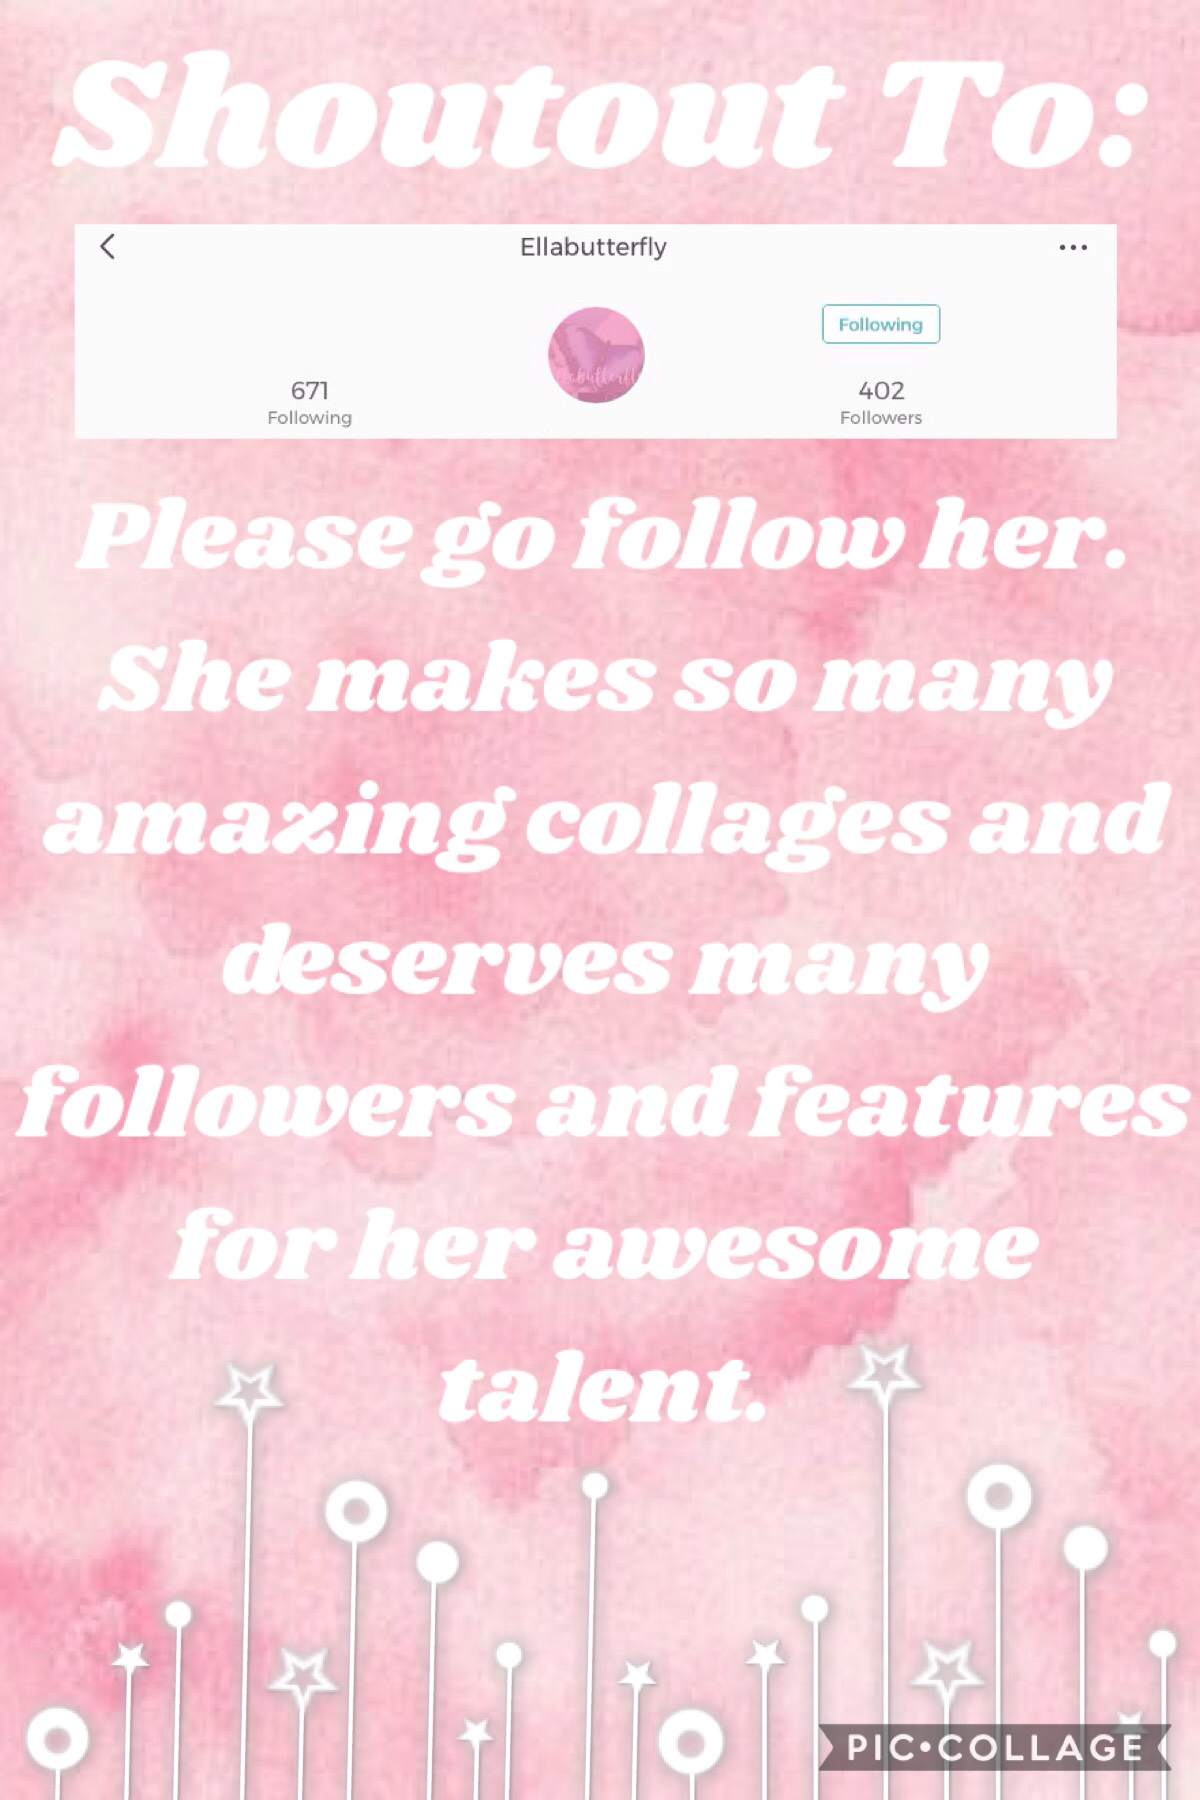 Yay!! Go follow her.